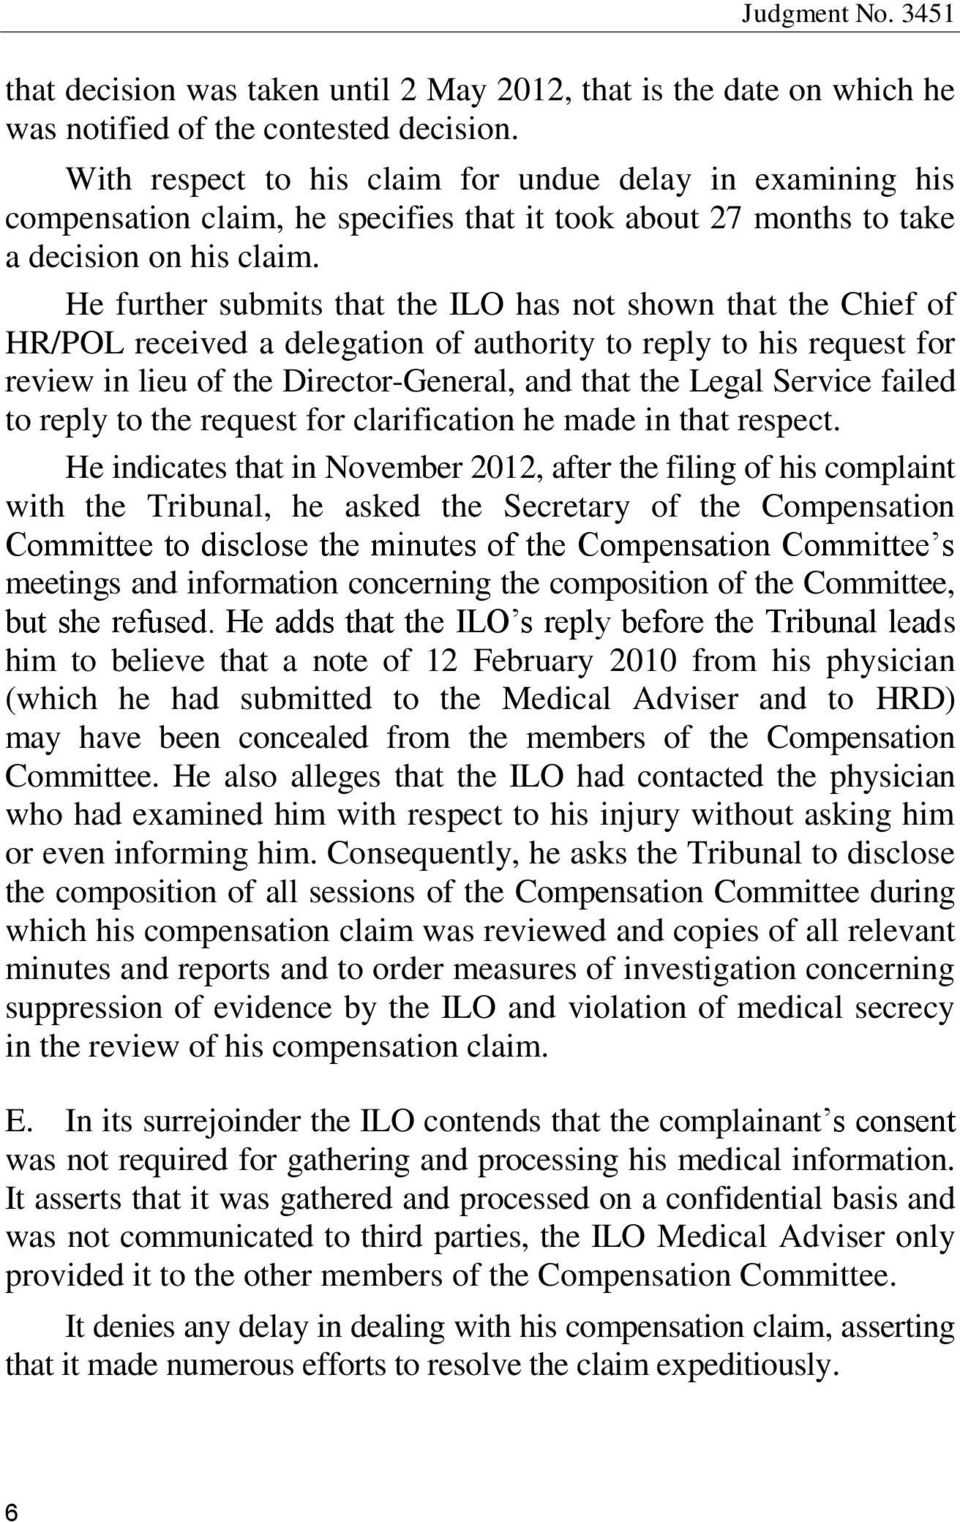 He further submits that the ILO has not shown that the Chief of HR/POL received a delegation of authority to reply to his request for review in lieu of the Director-General, and that the Legal